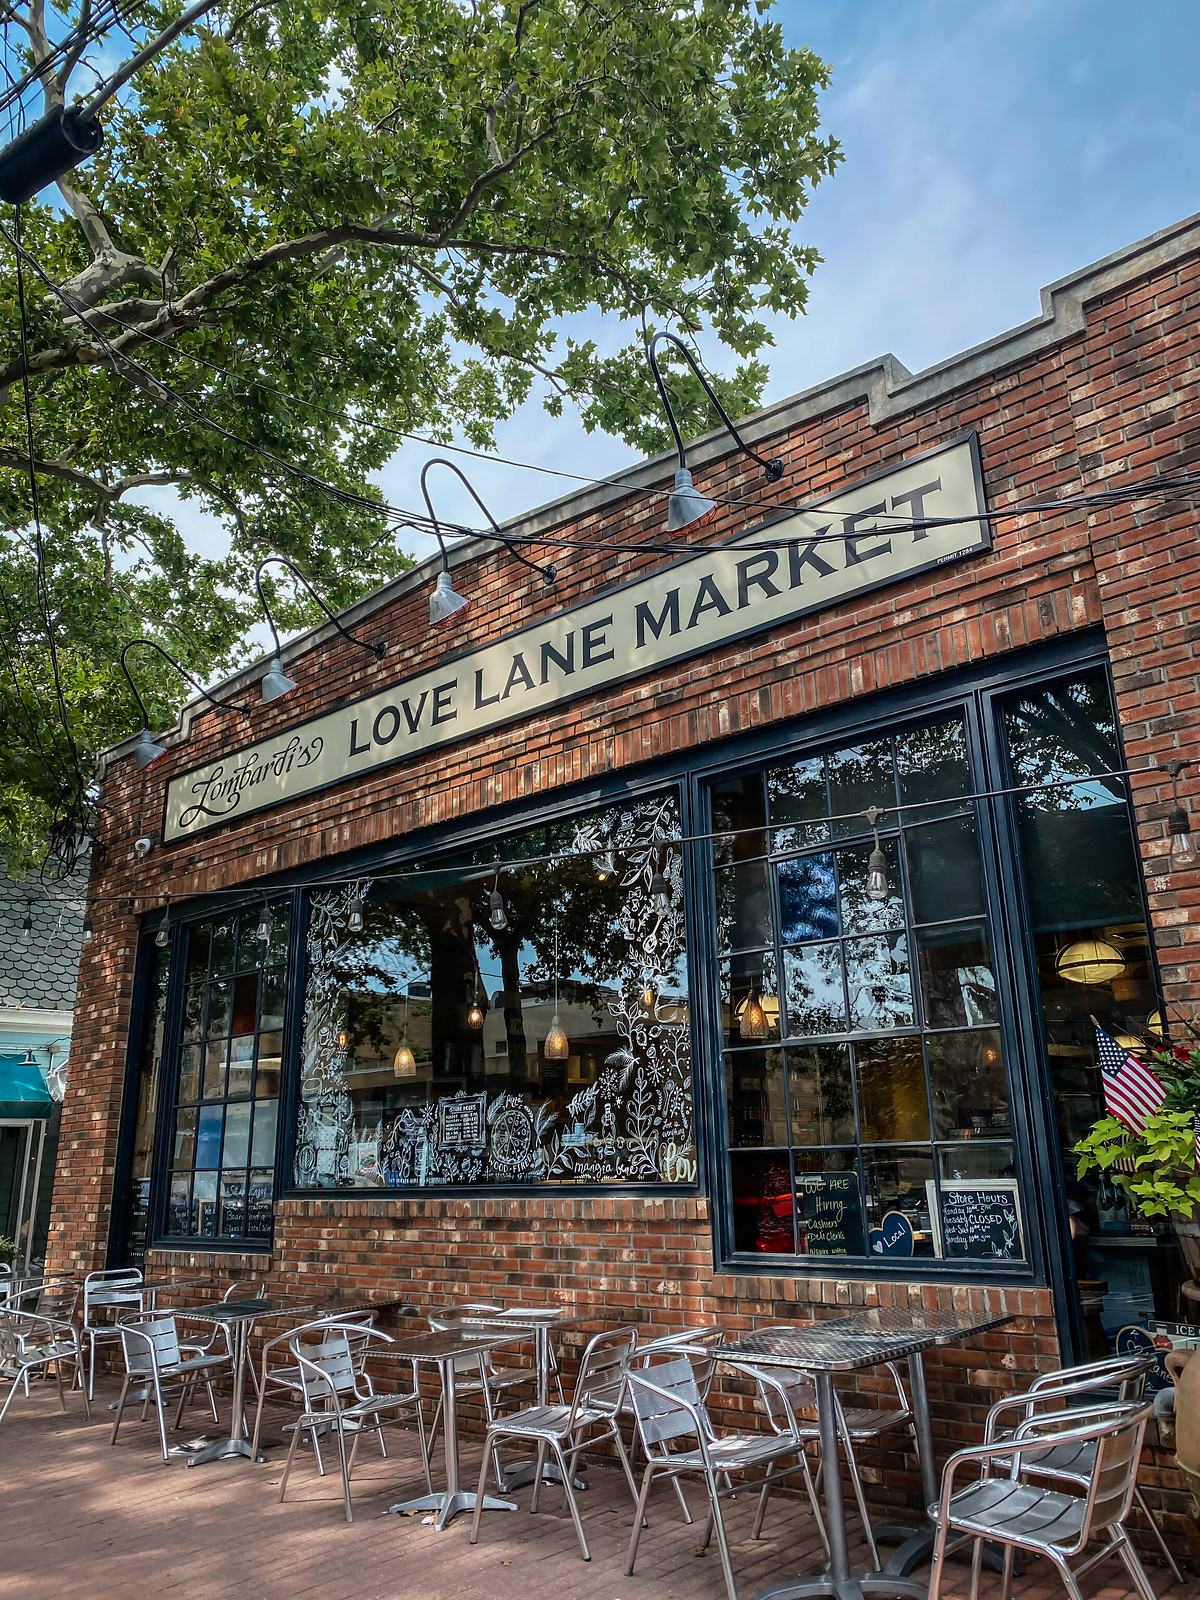 Love Lane Market   48 Hours on the North Fork, Long Island   The Perfect Weekend Itinerary   Best Things to Do on The North Fork   Explore Long Island New York   Weekend in North Fork, LI   North Fork, Long Island Travel Guide   Things to Do & Where to Stay   Weekend Trip Out East   2 Days in the North Fork   Top Things to do in Long Island